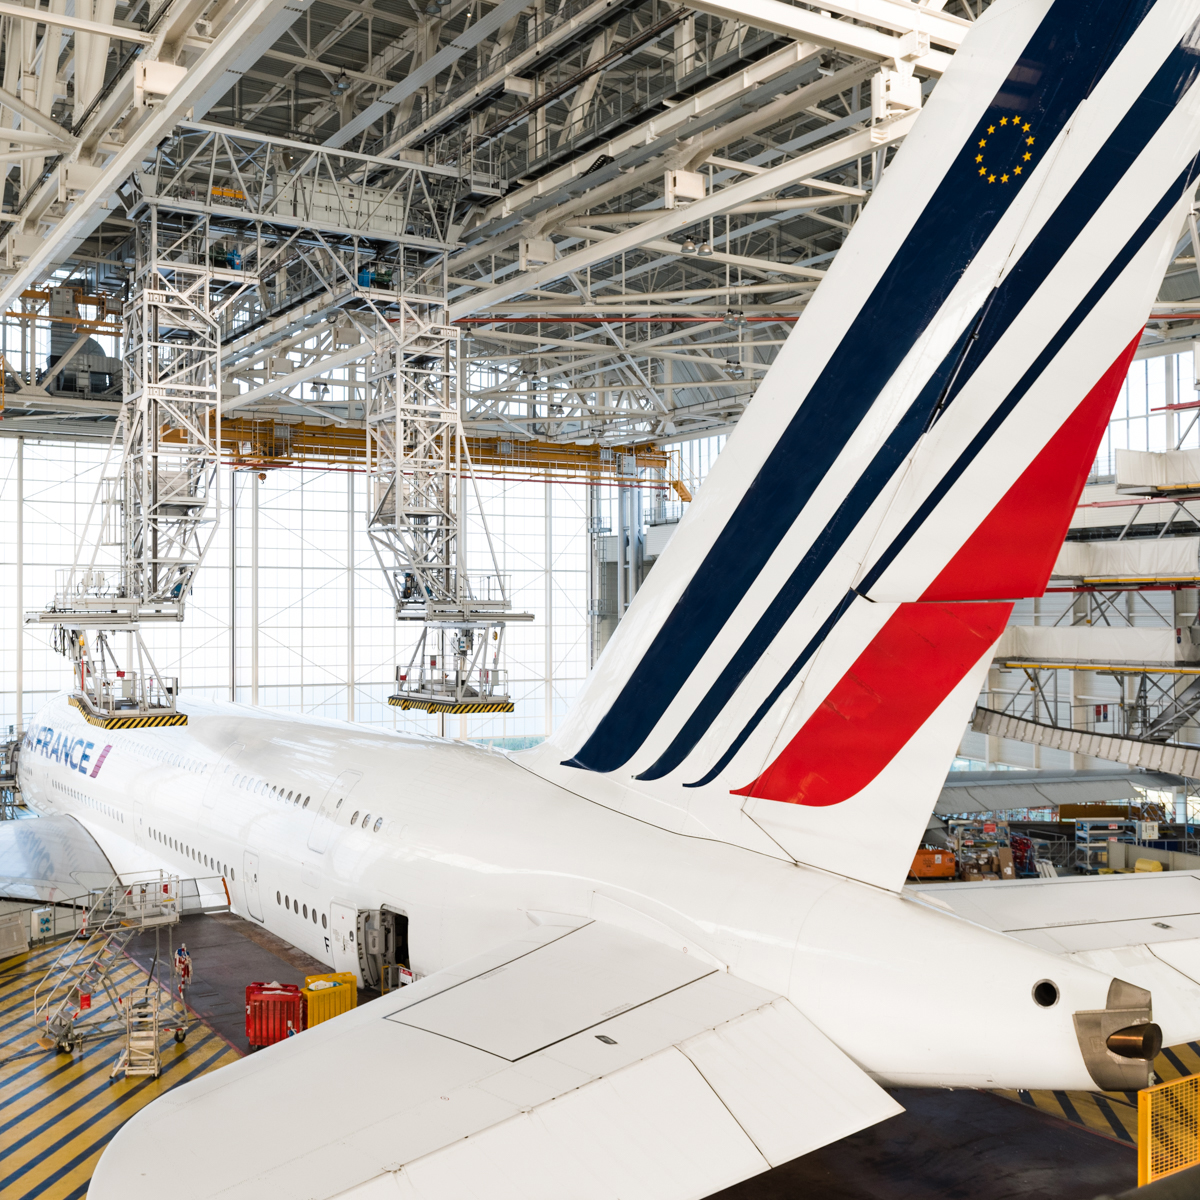 af a380 tail angle square (1 of 1).jpg